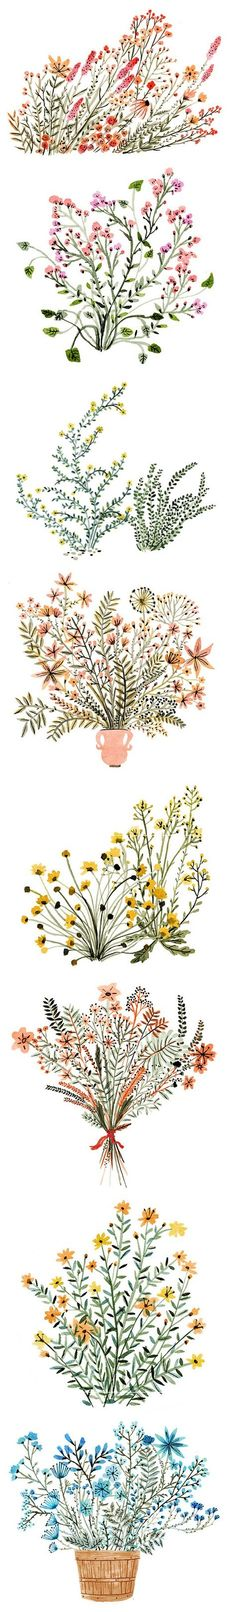 Dainty watercolor flowers, by Vikki Chu